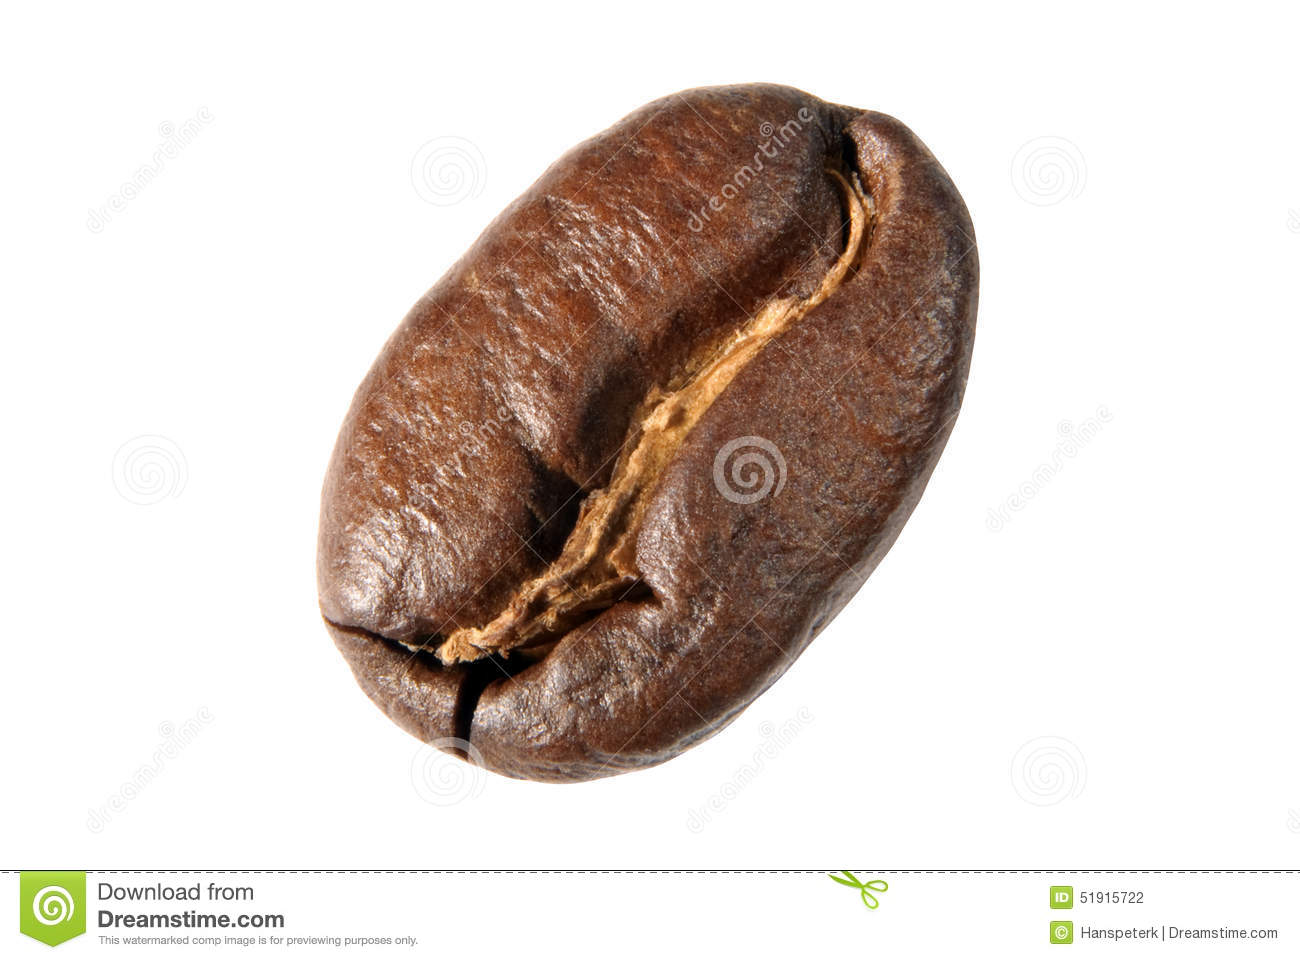 What Fresh Roasted Coffee